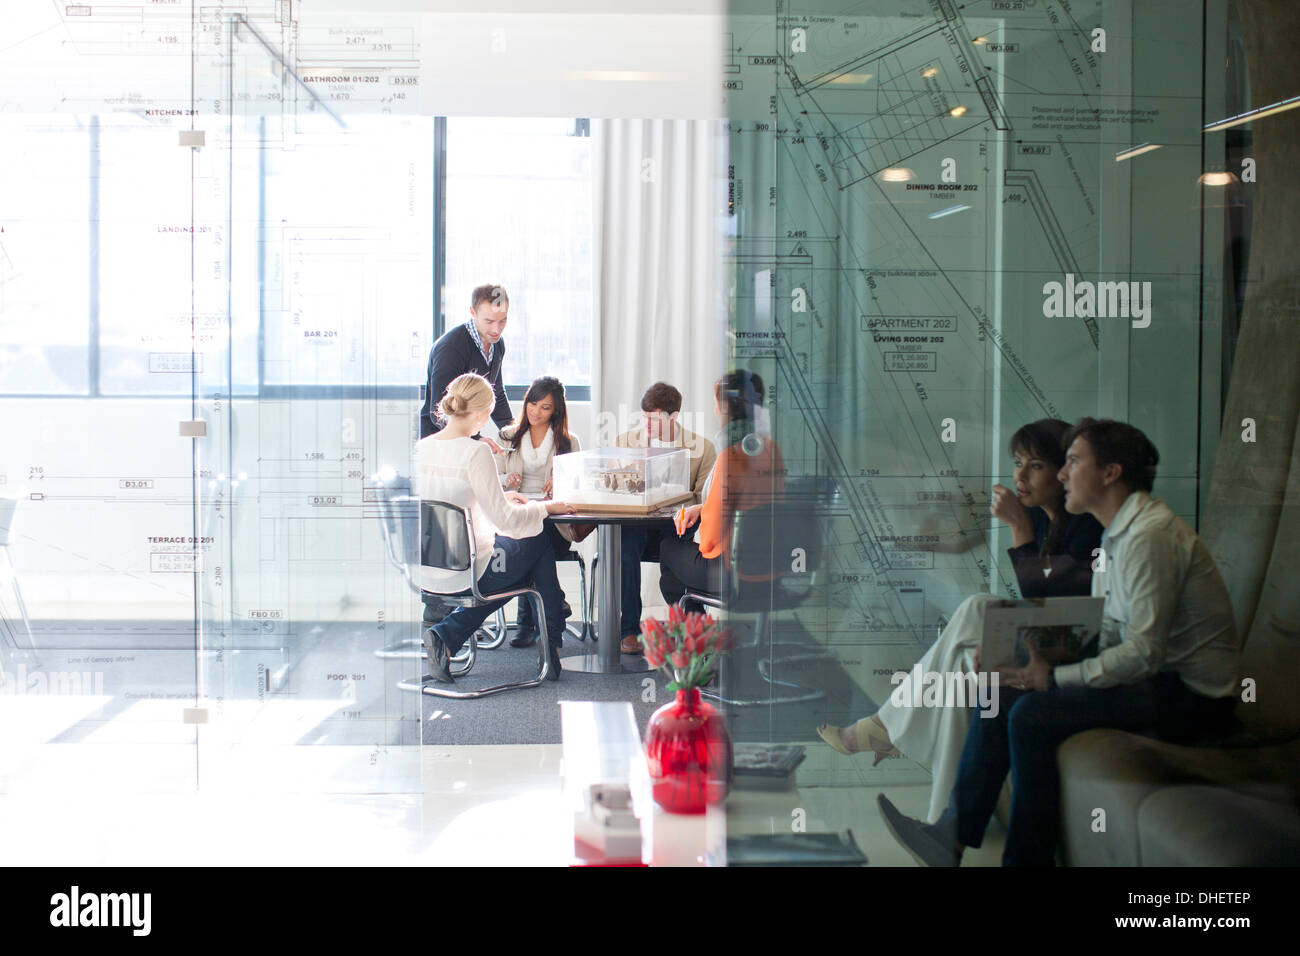 Meetings in architects office - Stock Image